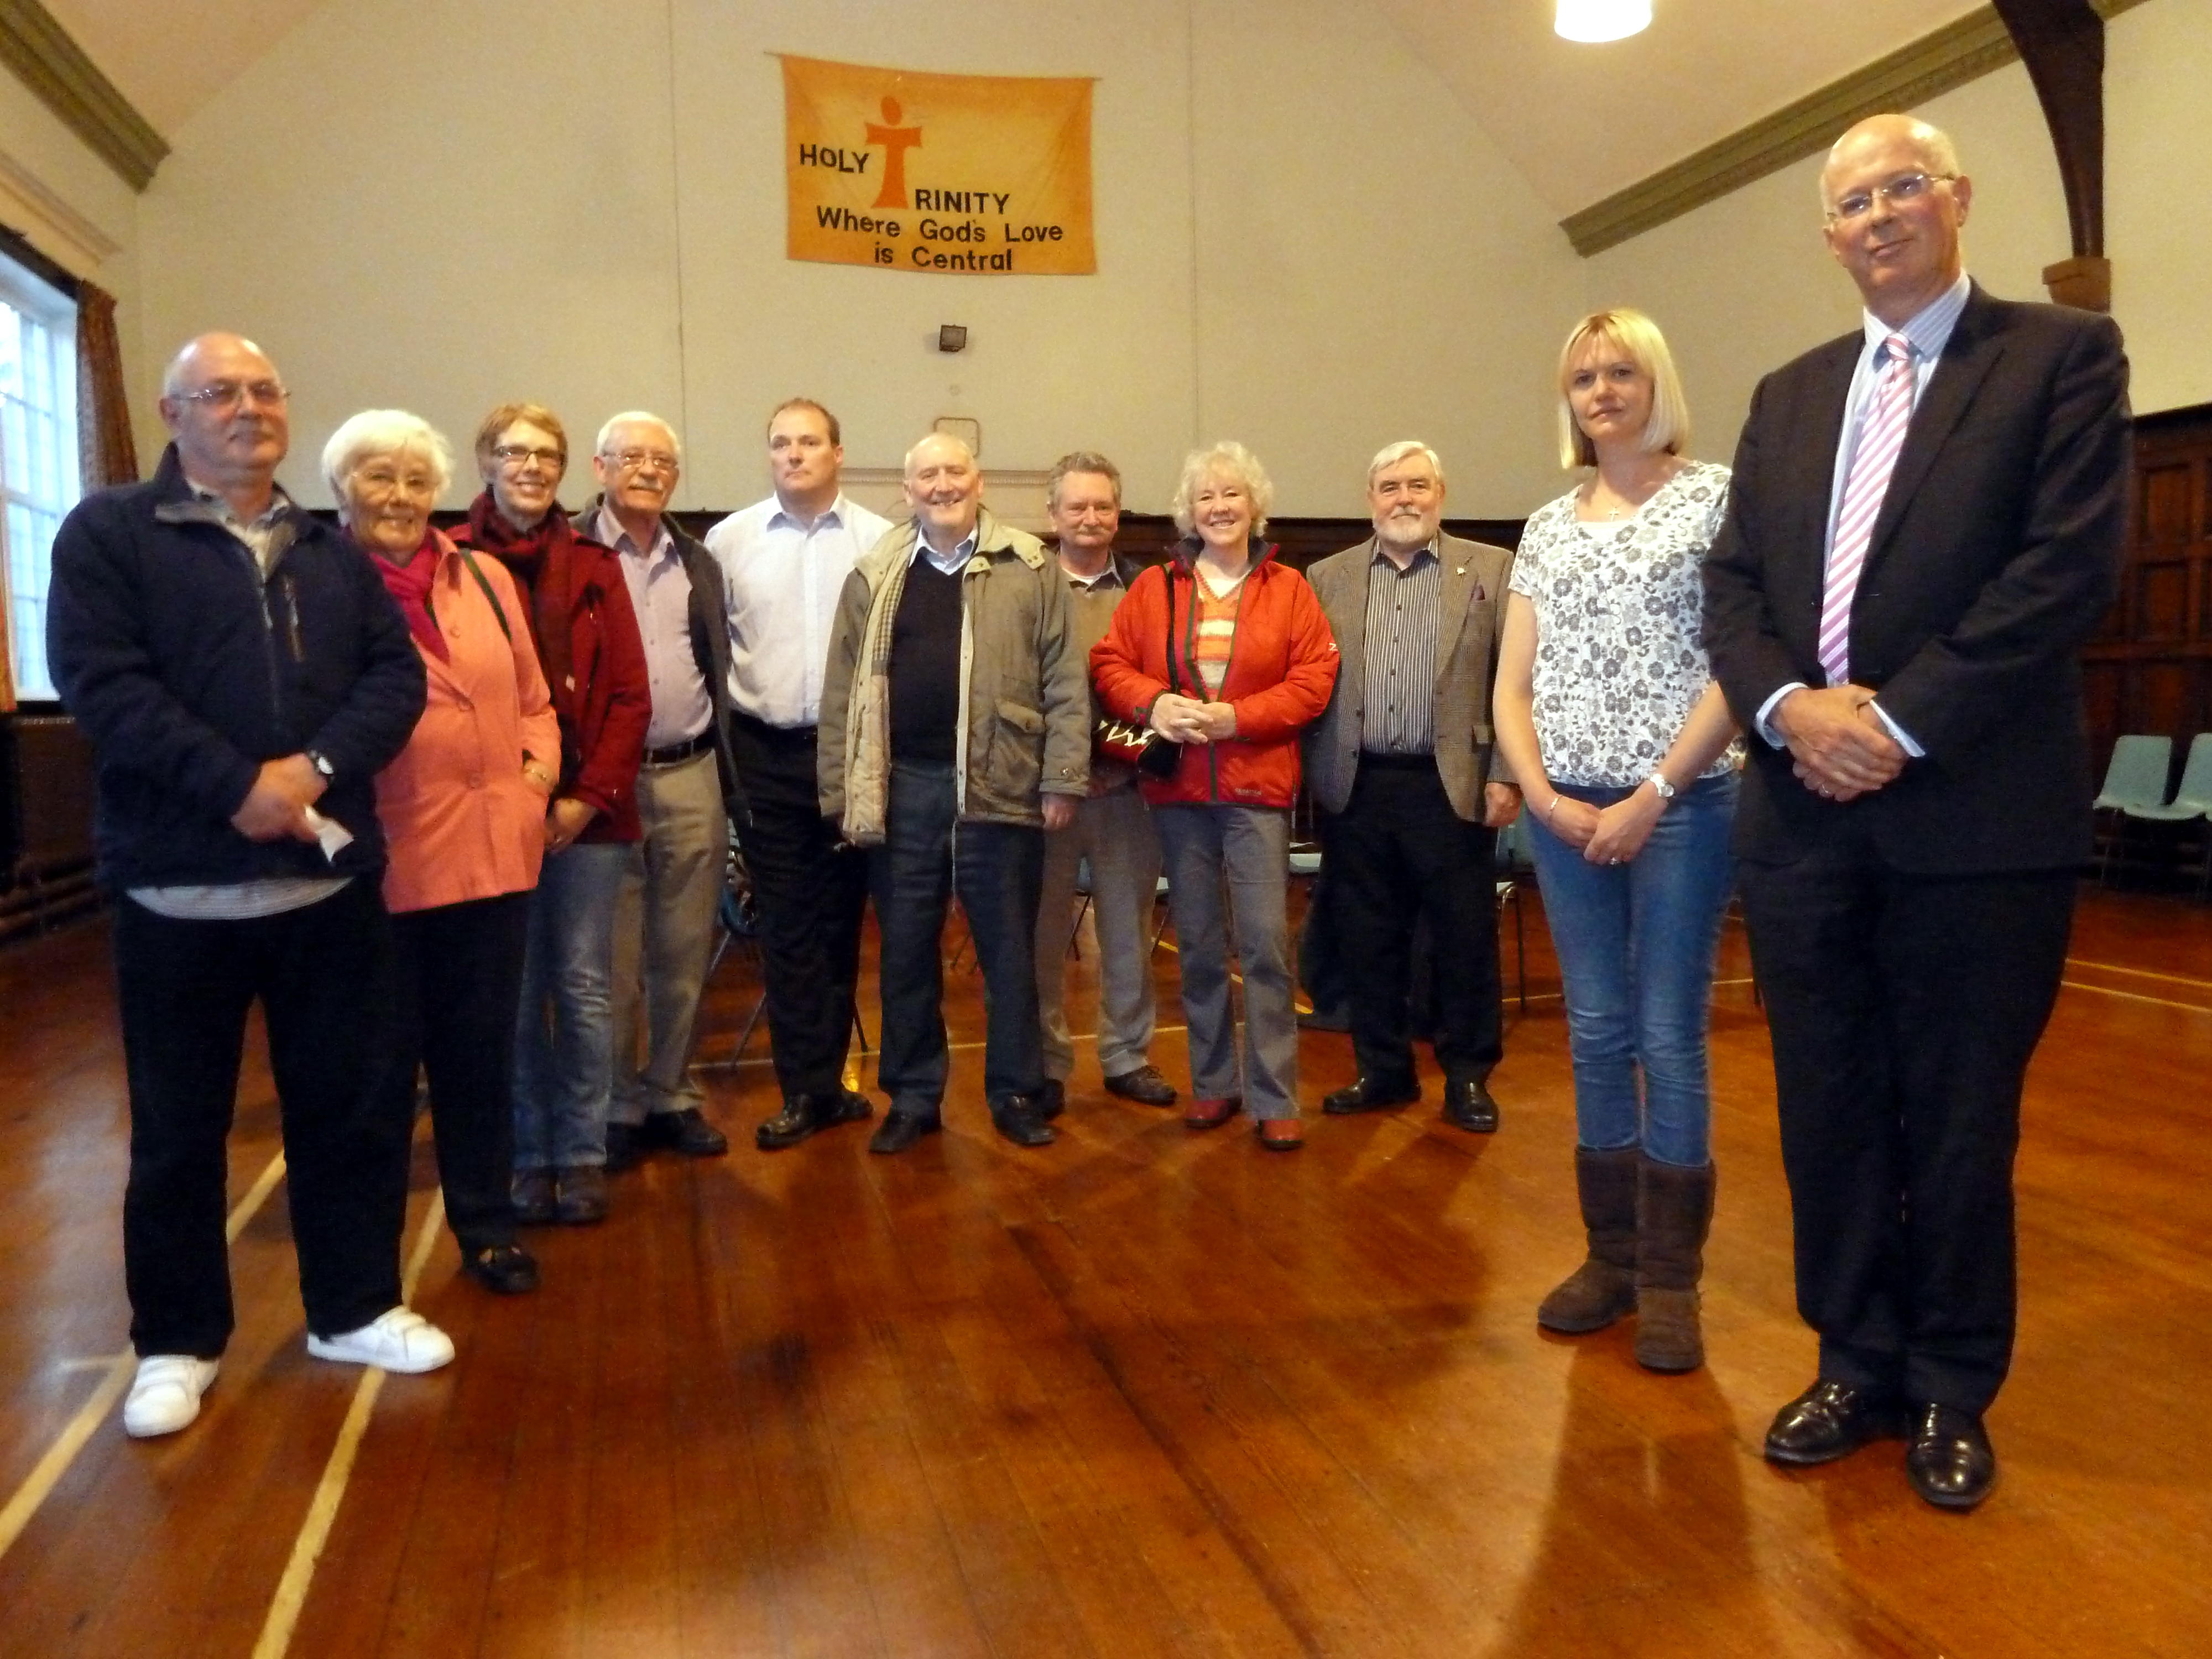 Formby Labour Councillor Nina Killen with Southport & Formby CCG chairman Dr Niall Leonard and some of the campaigners and residents who attended the 38 Degrees meeting at Holy Trinity Parish Hall in Formby on Monday.